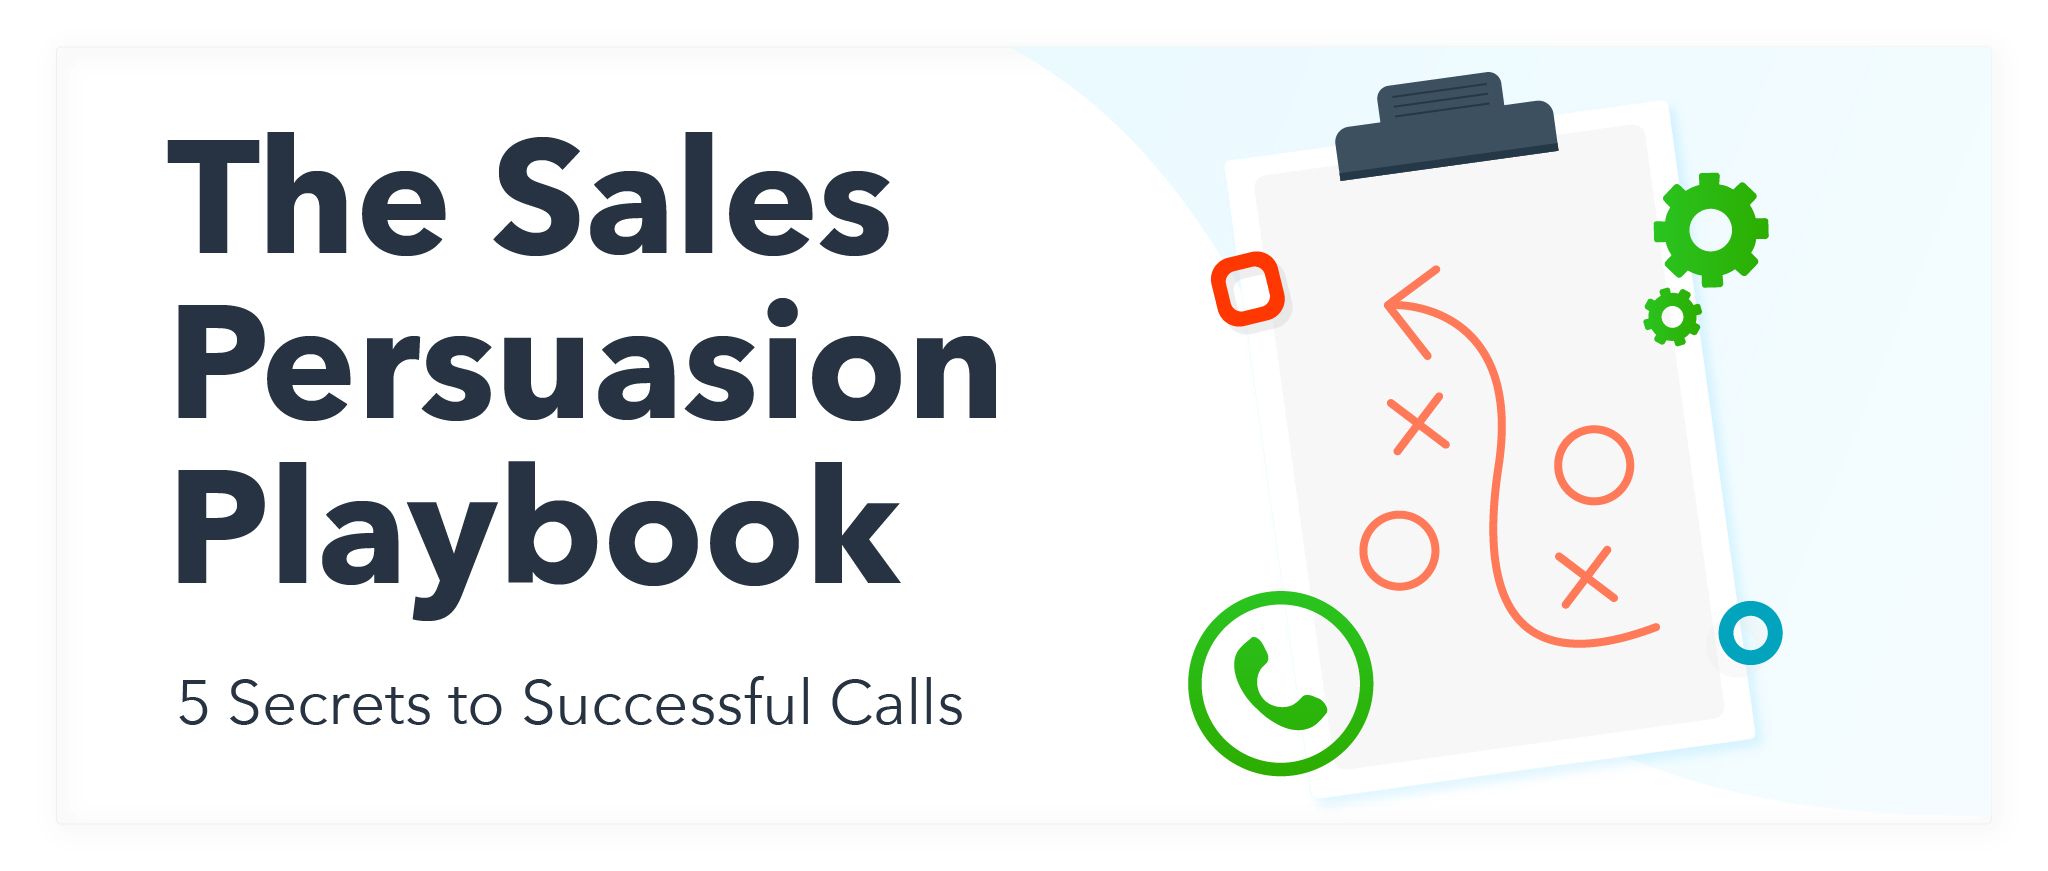 The Sales Persuasion Playbook